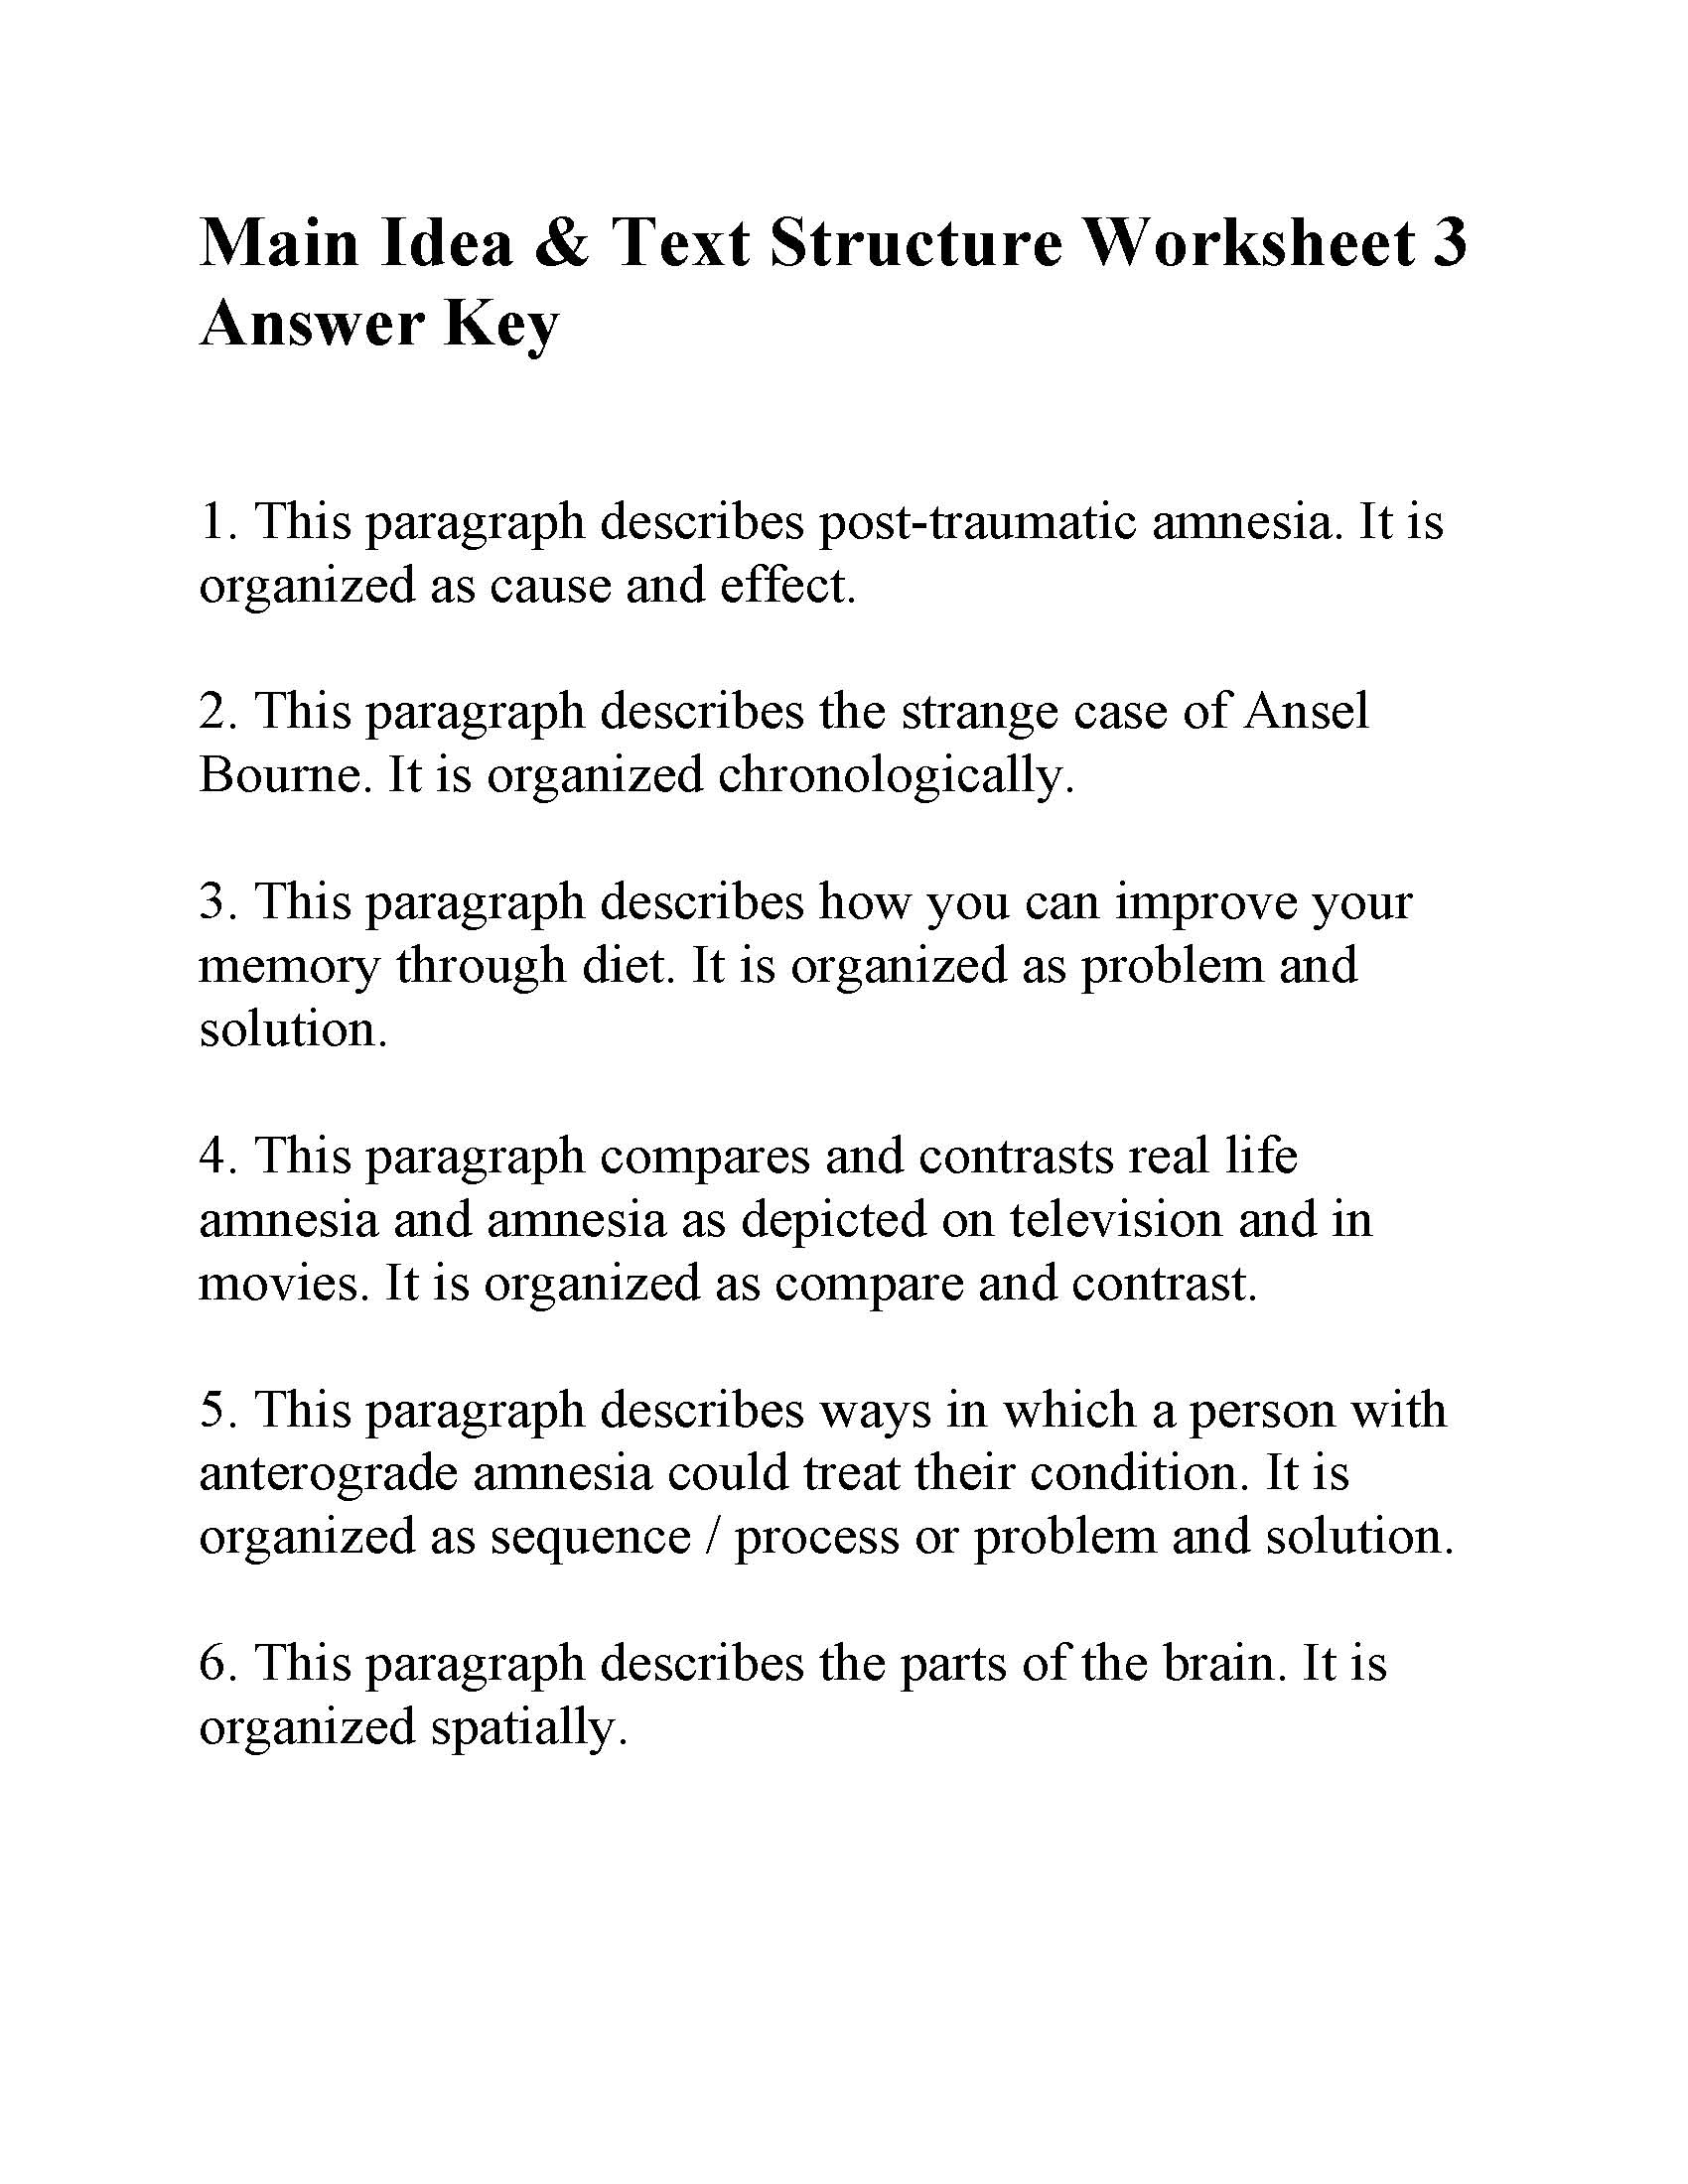 Main Idea And Text Structure Worksheet 3